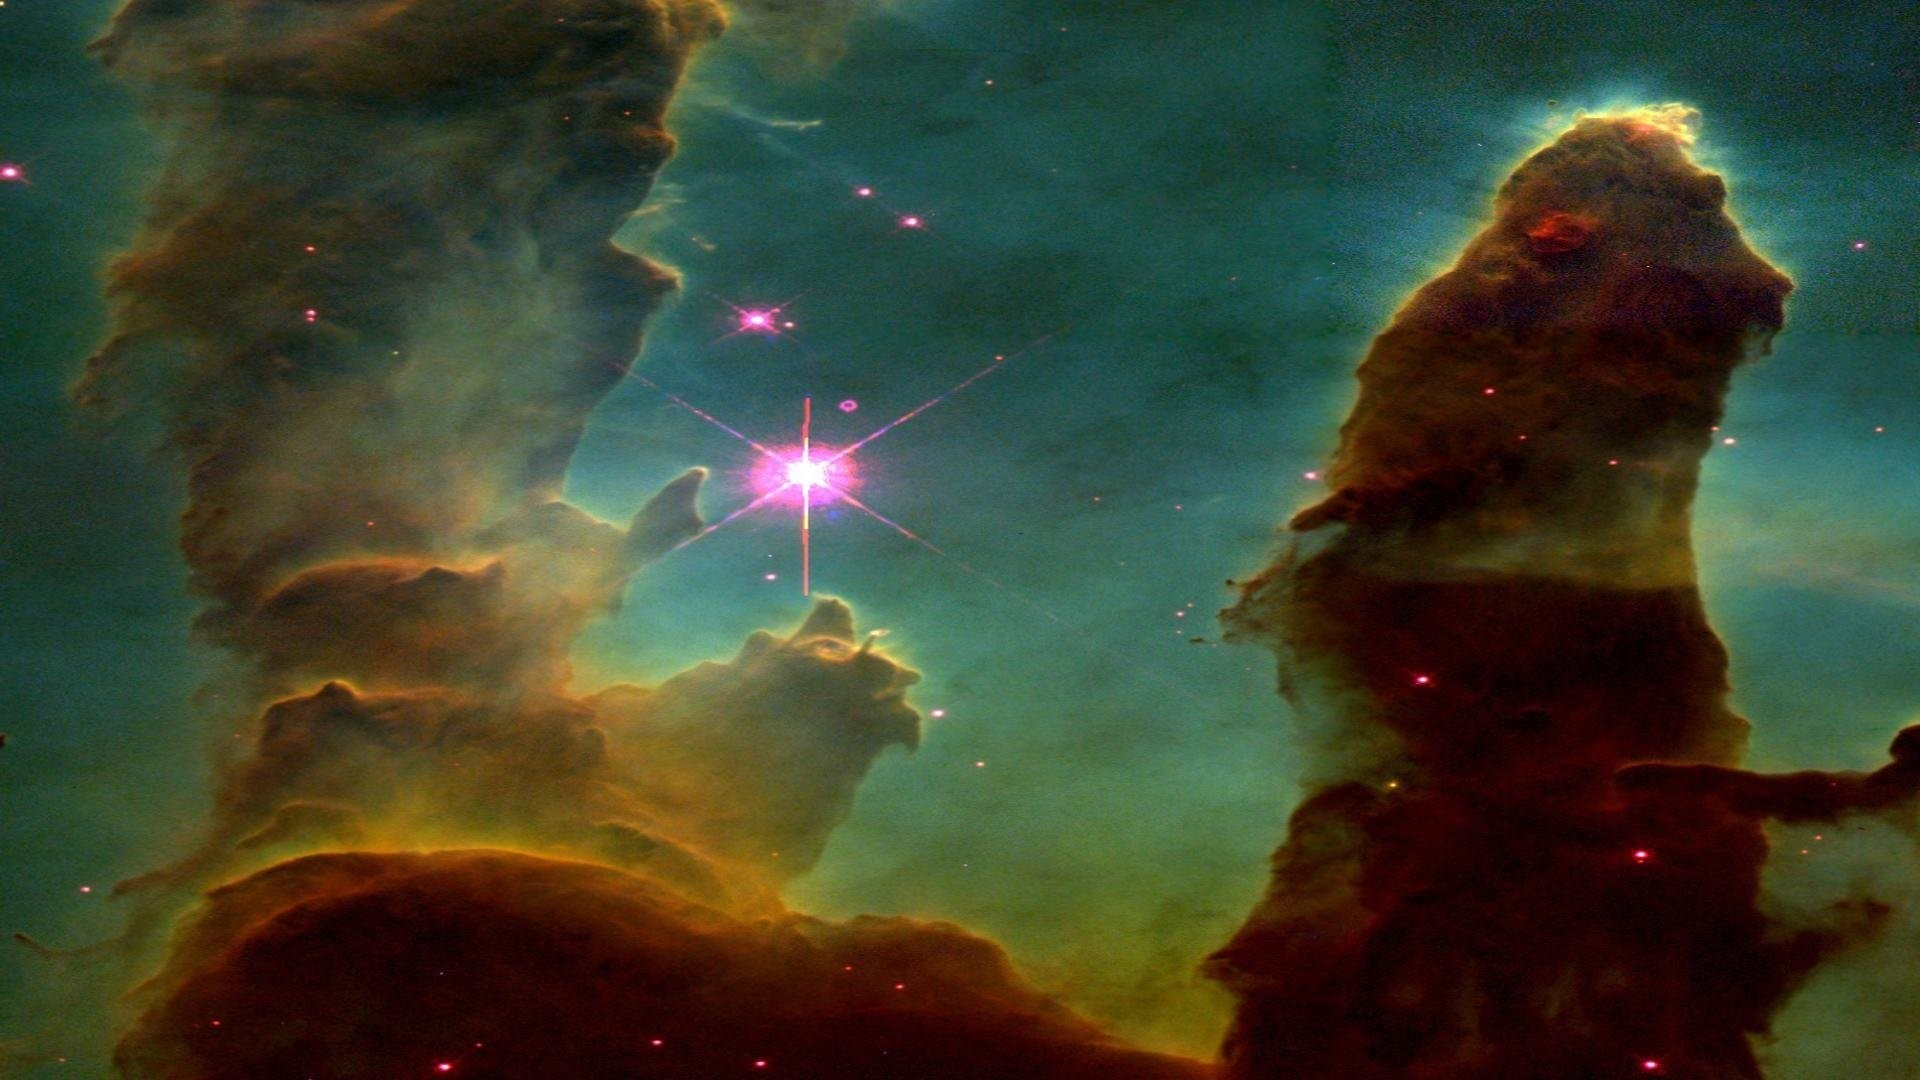 Pillars of creation wallpaper 1920x1080 48 pictures - Pillars of creation wallpaper ...